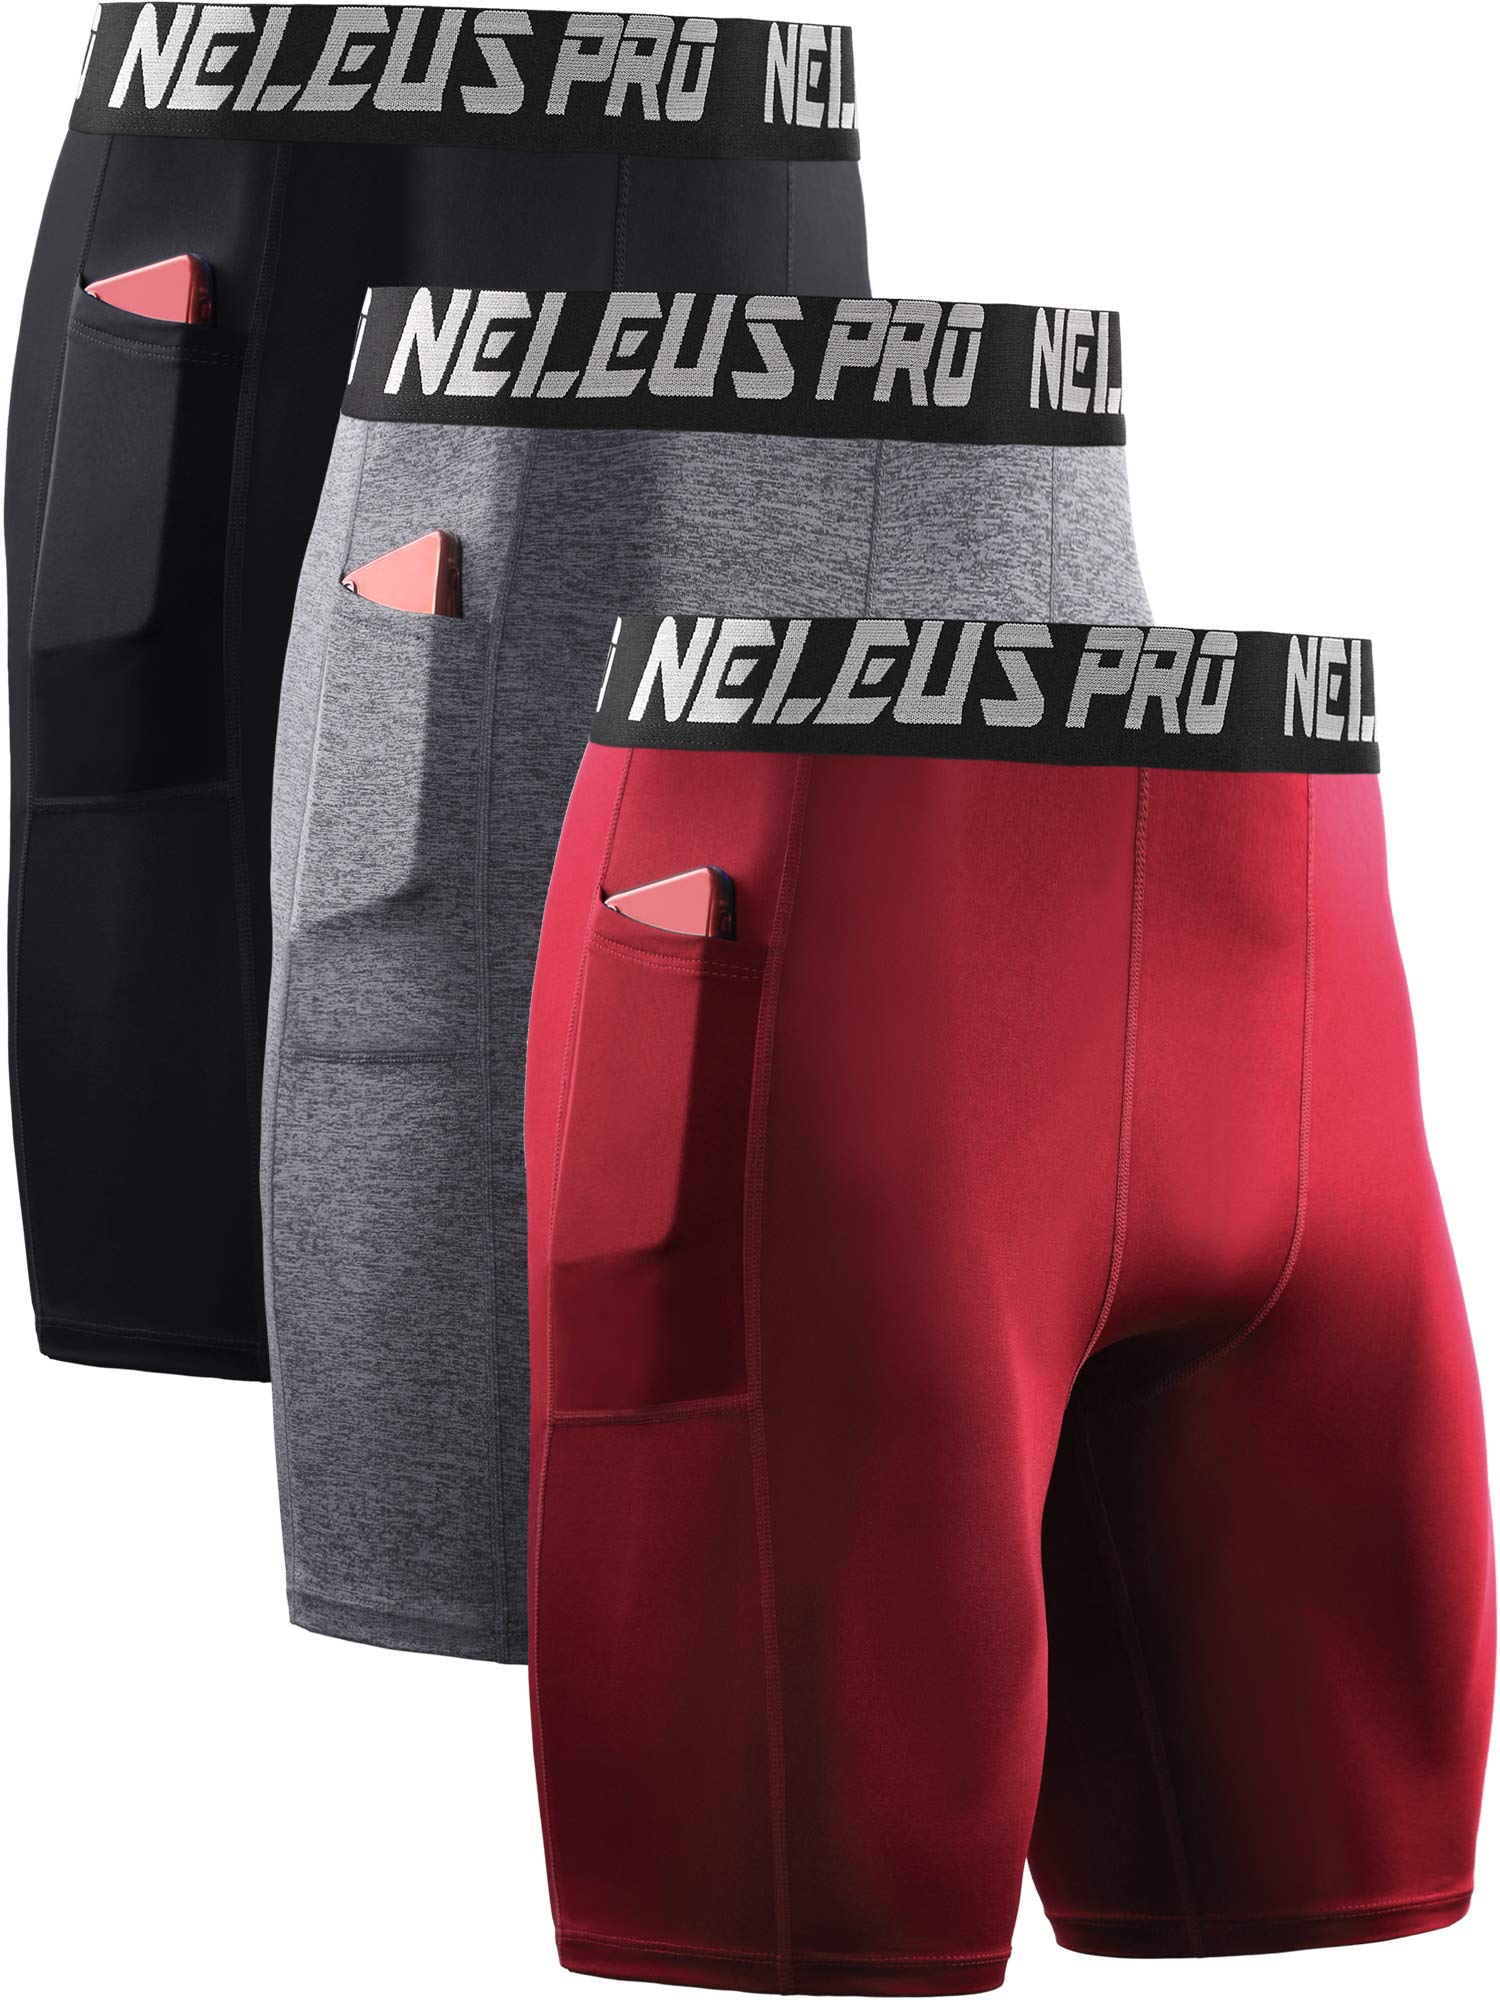 Neleus Men's 3 Pack Compression Shorts with Pockets,6063,Black/Grey/Red,US XL,EU 2XL by Neleus